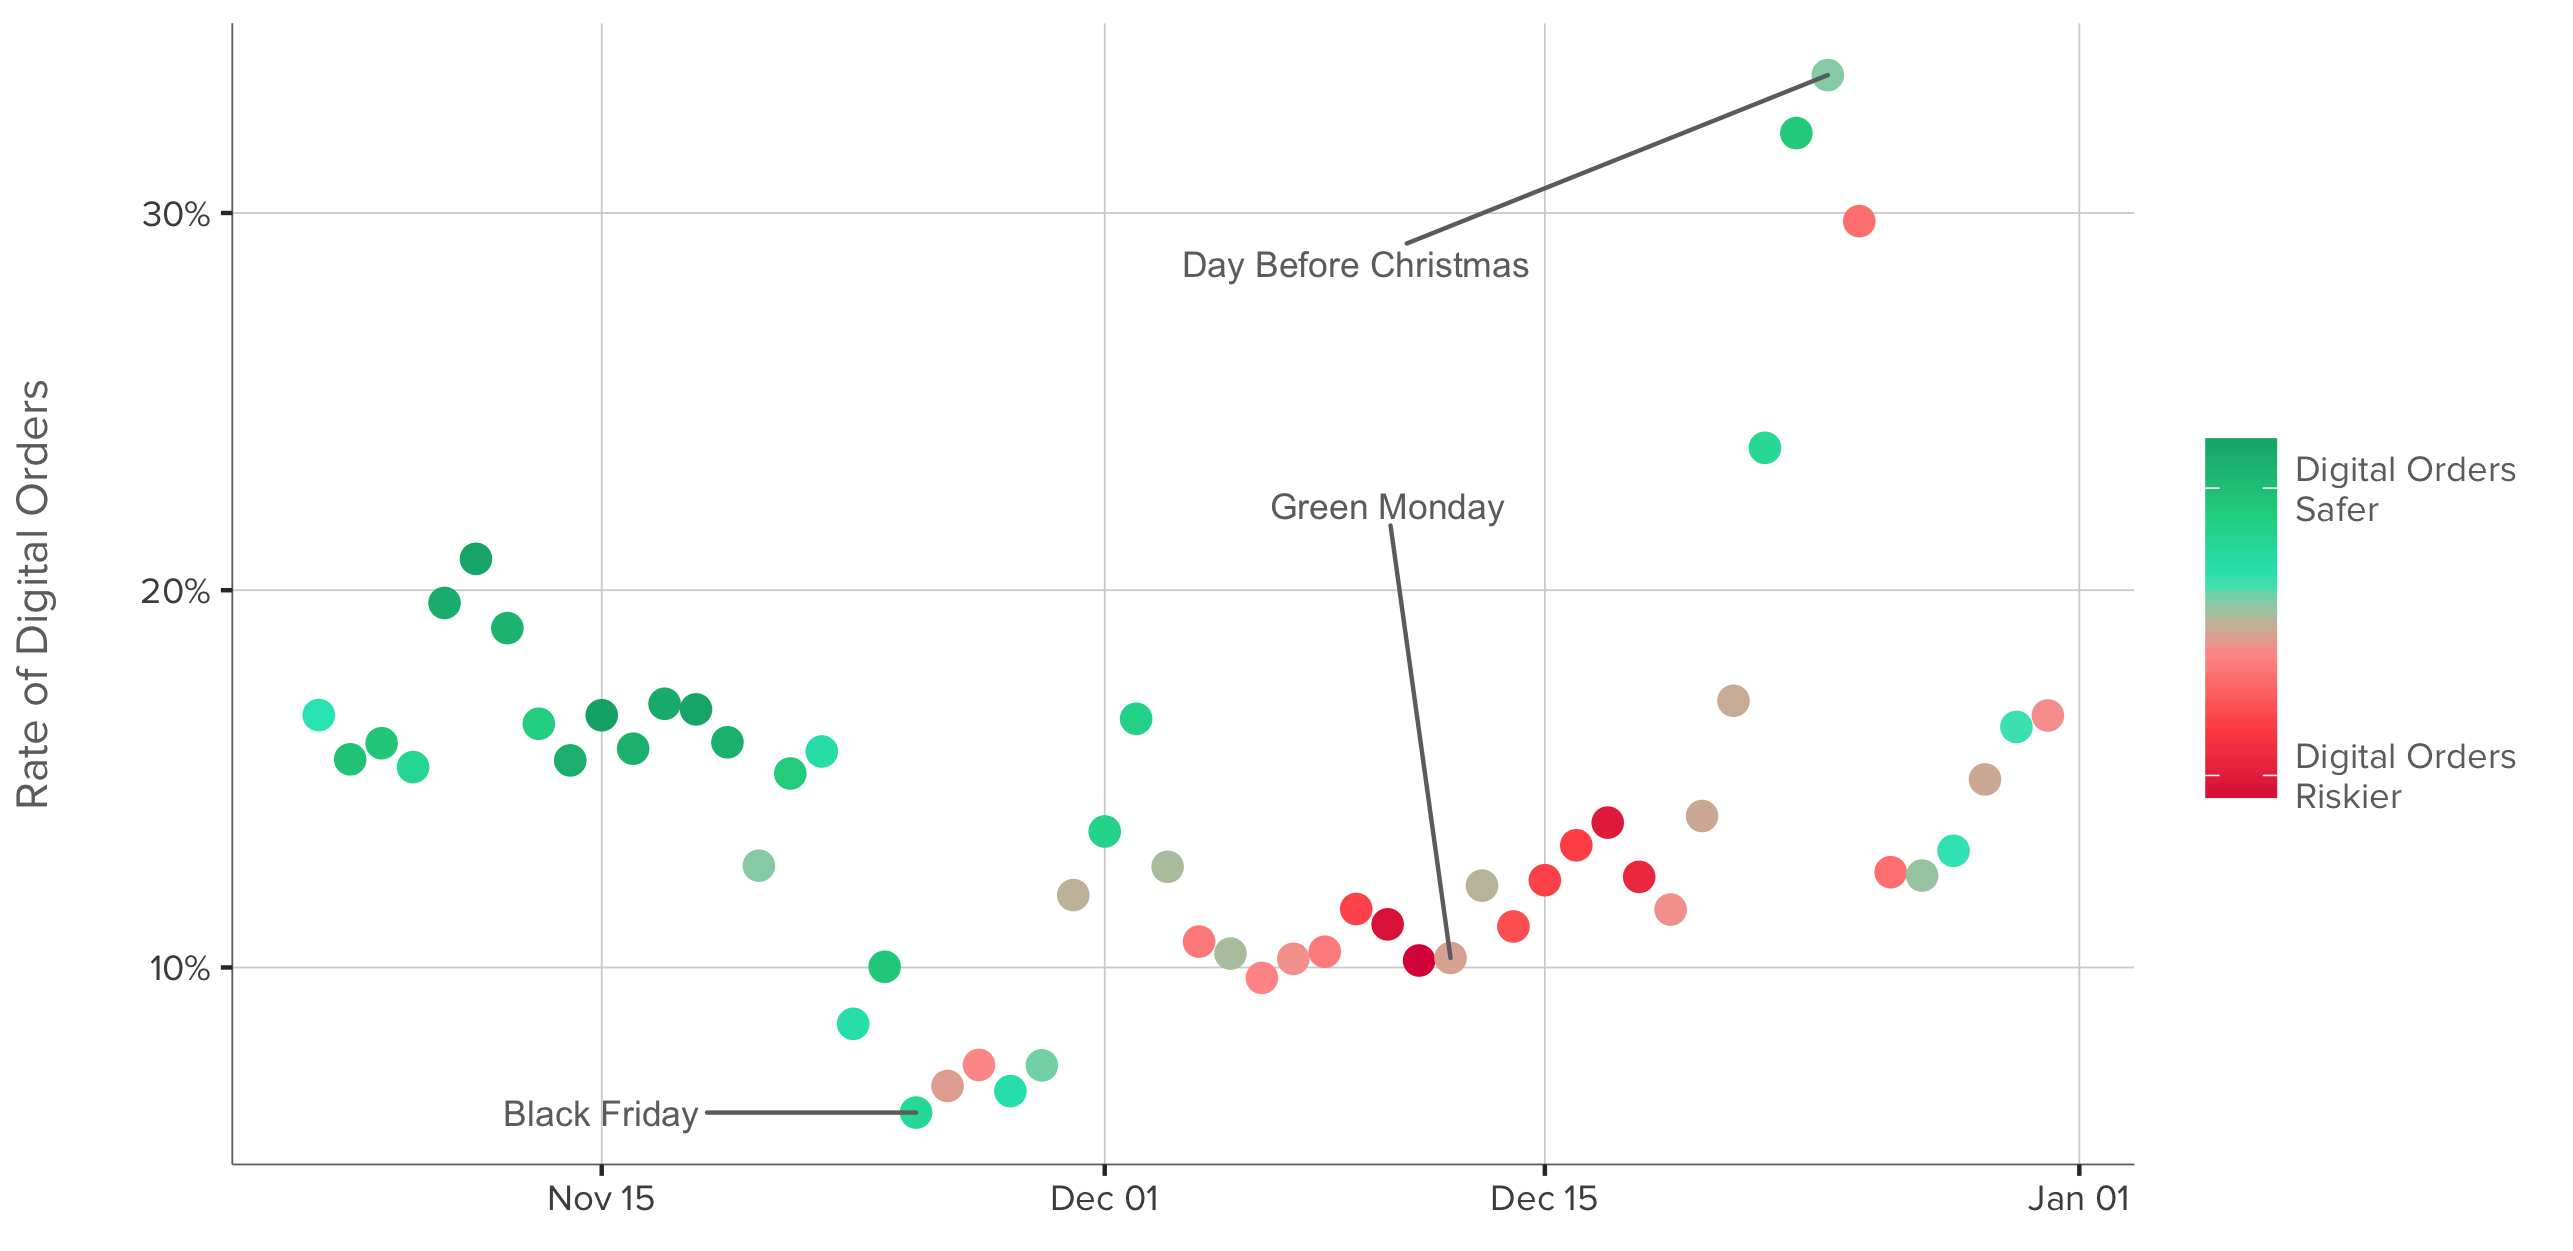 Christmas Ecommerce: What to Expect and How to Prepare